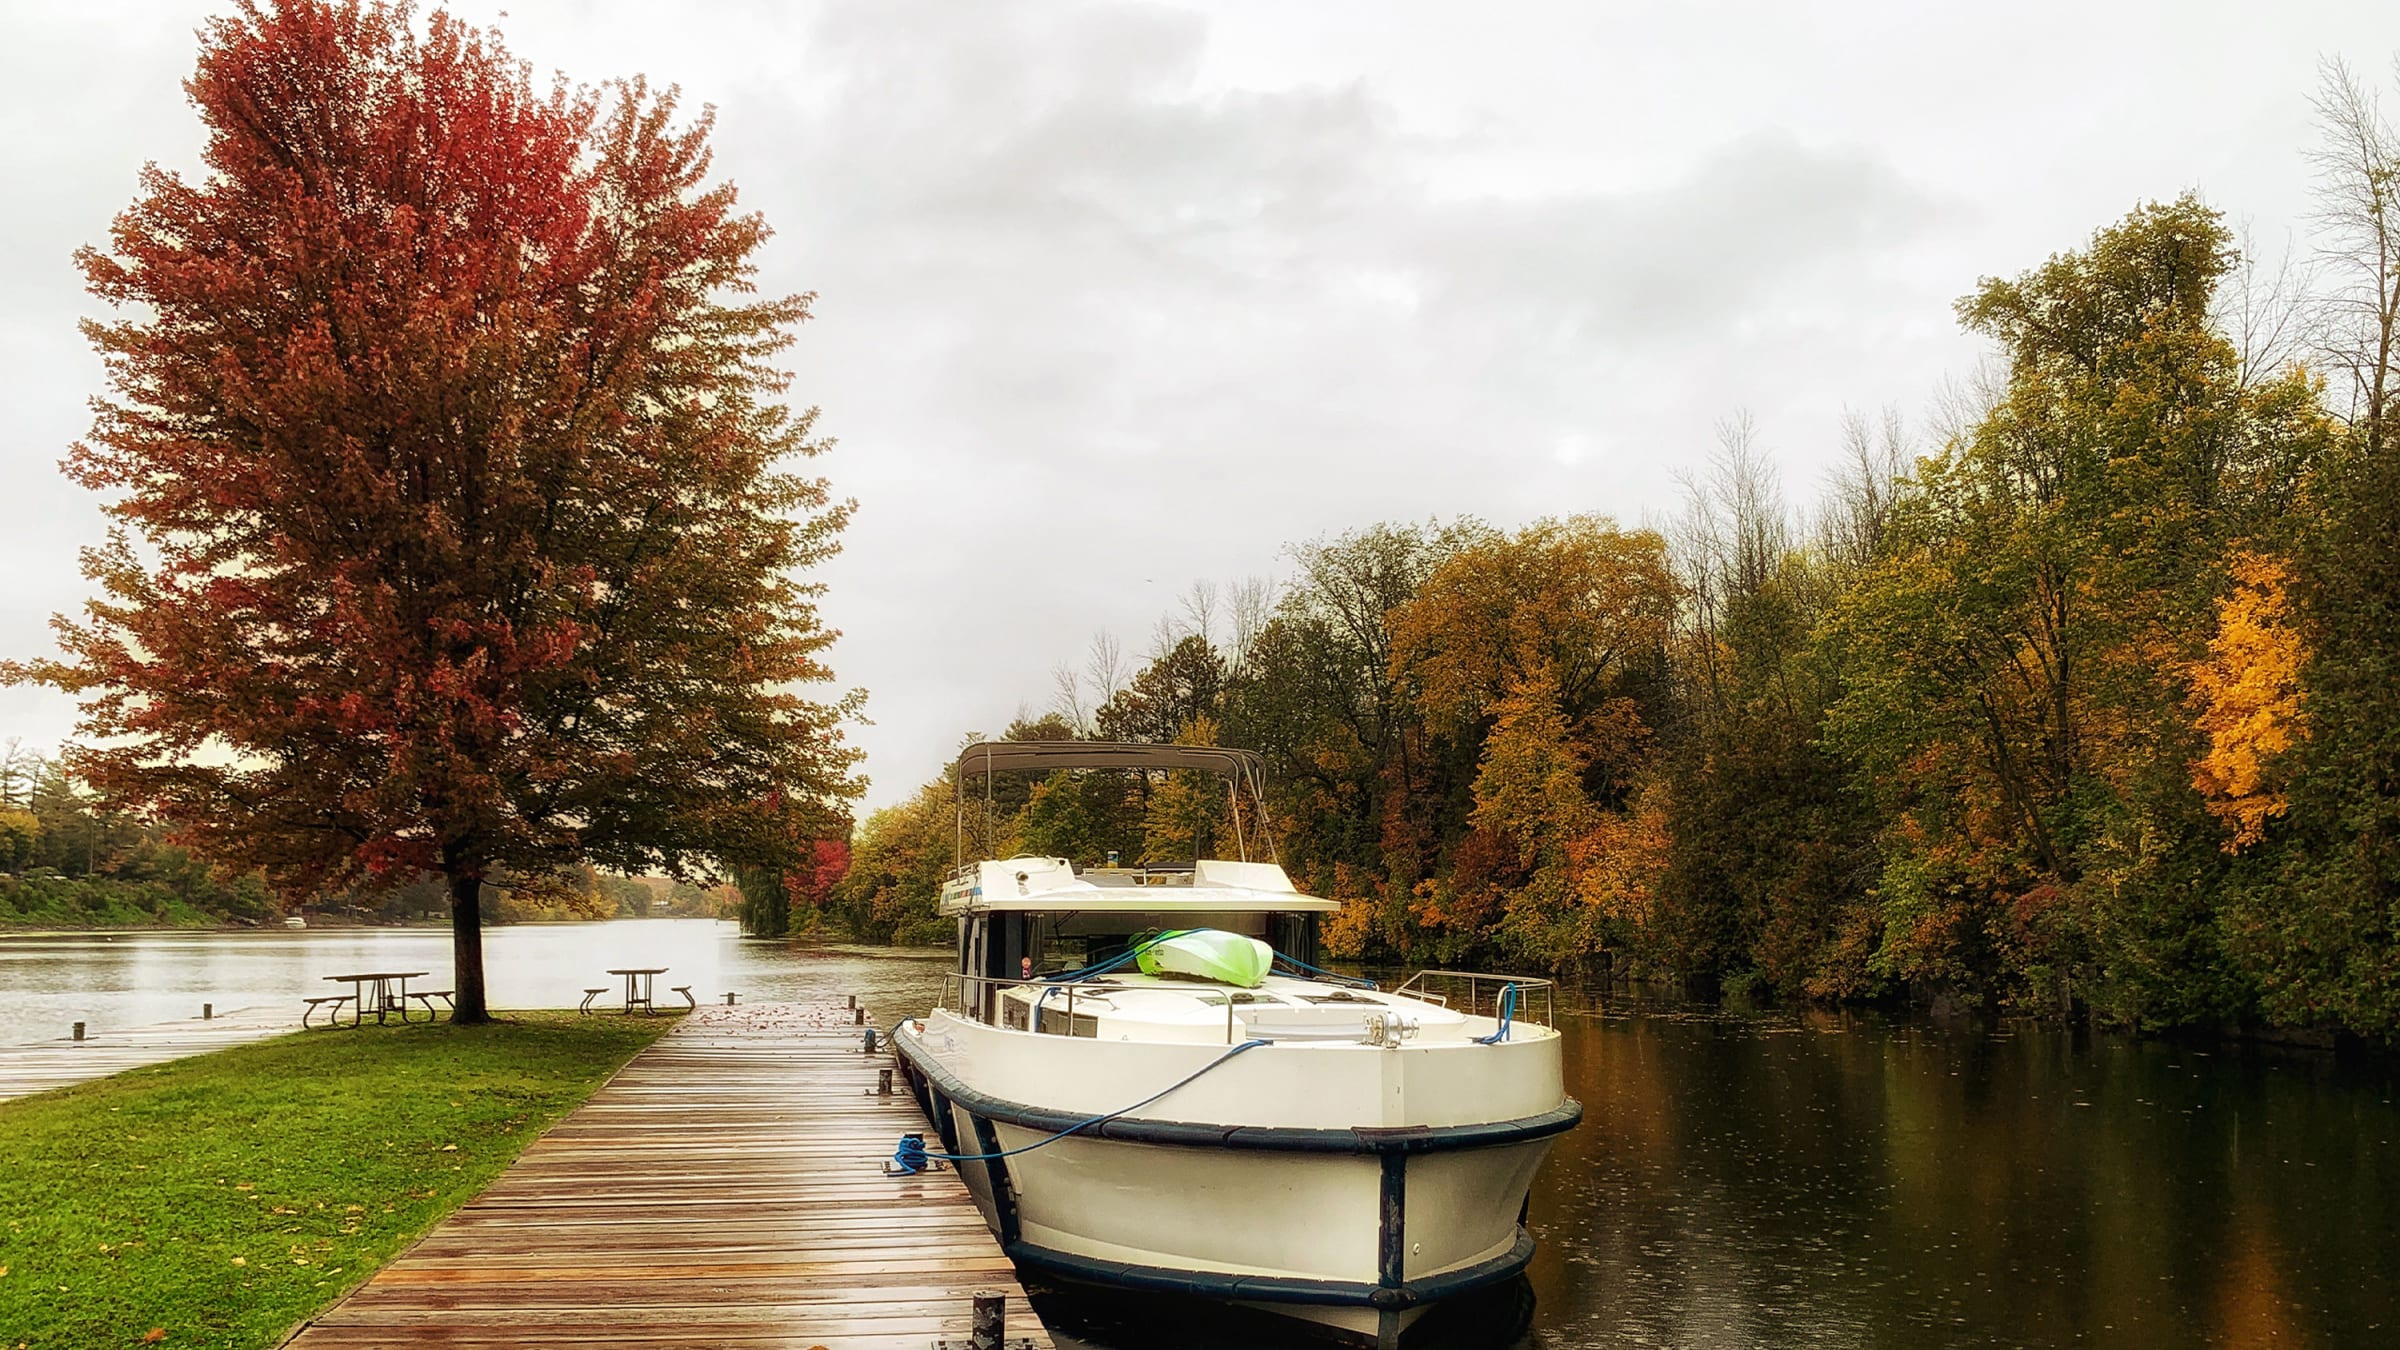 The Boating Trip Perfect for Leaf Peepers; Jennifer Bain; Daily Beast